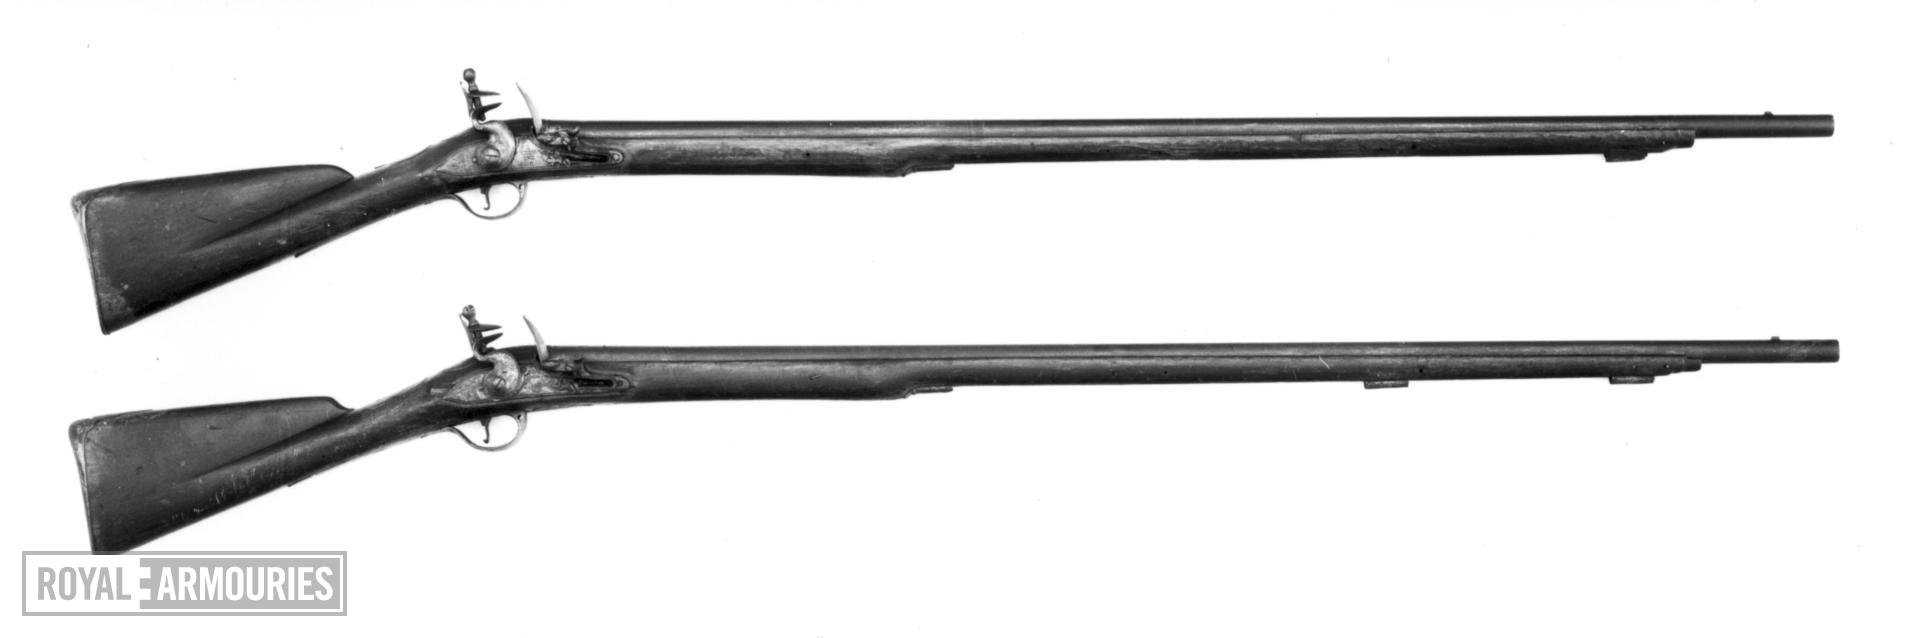 Flintlock muzzle-loading military musket - By Haskins